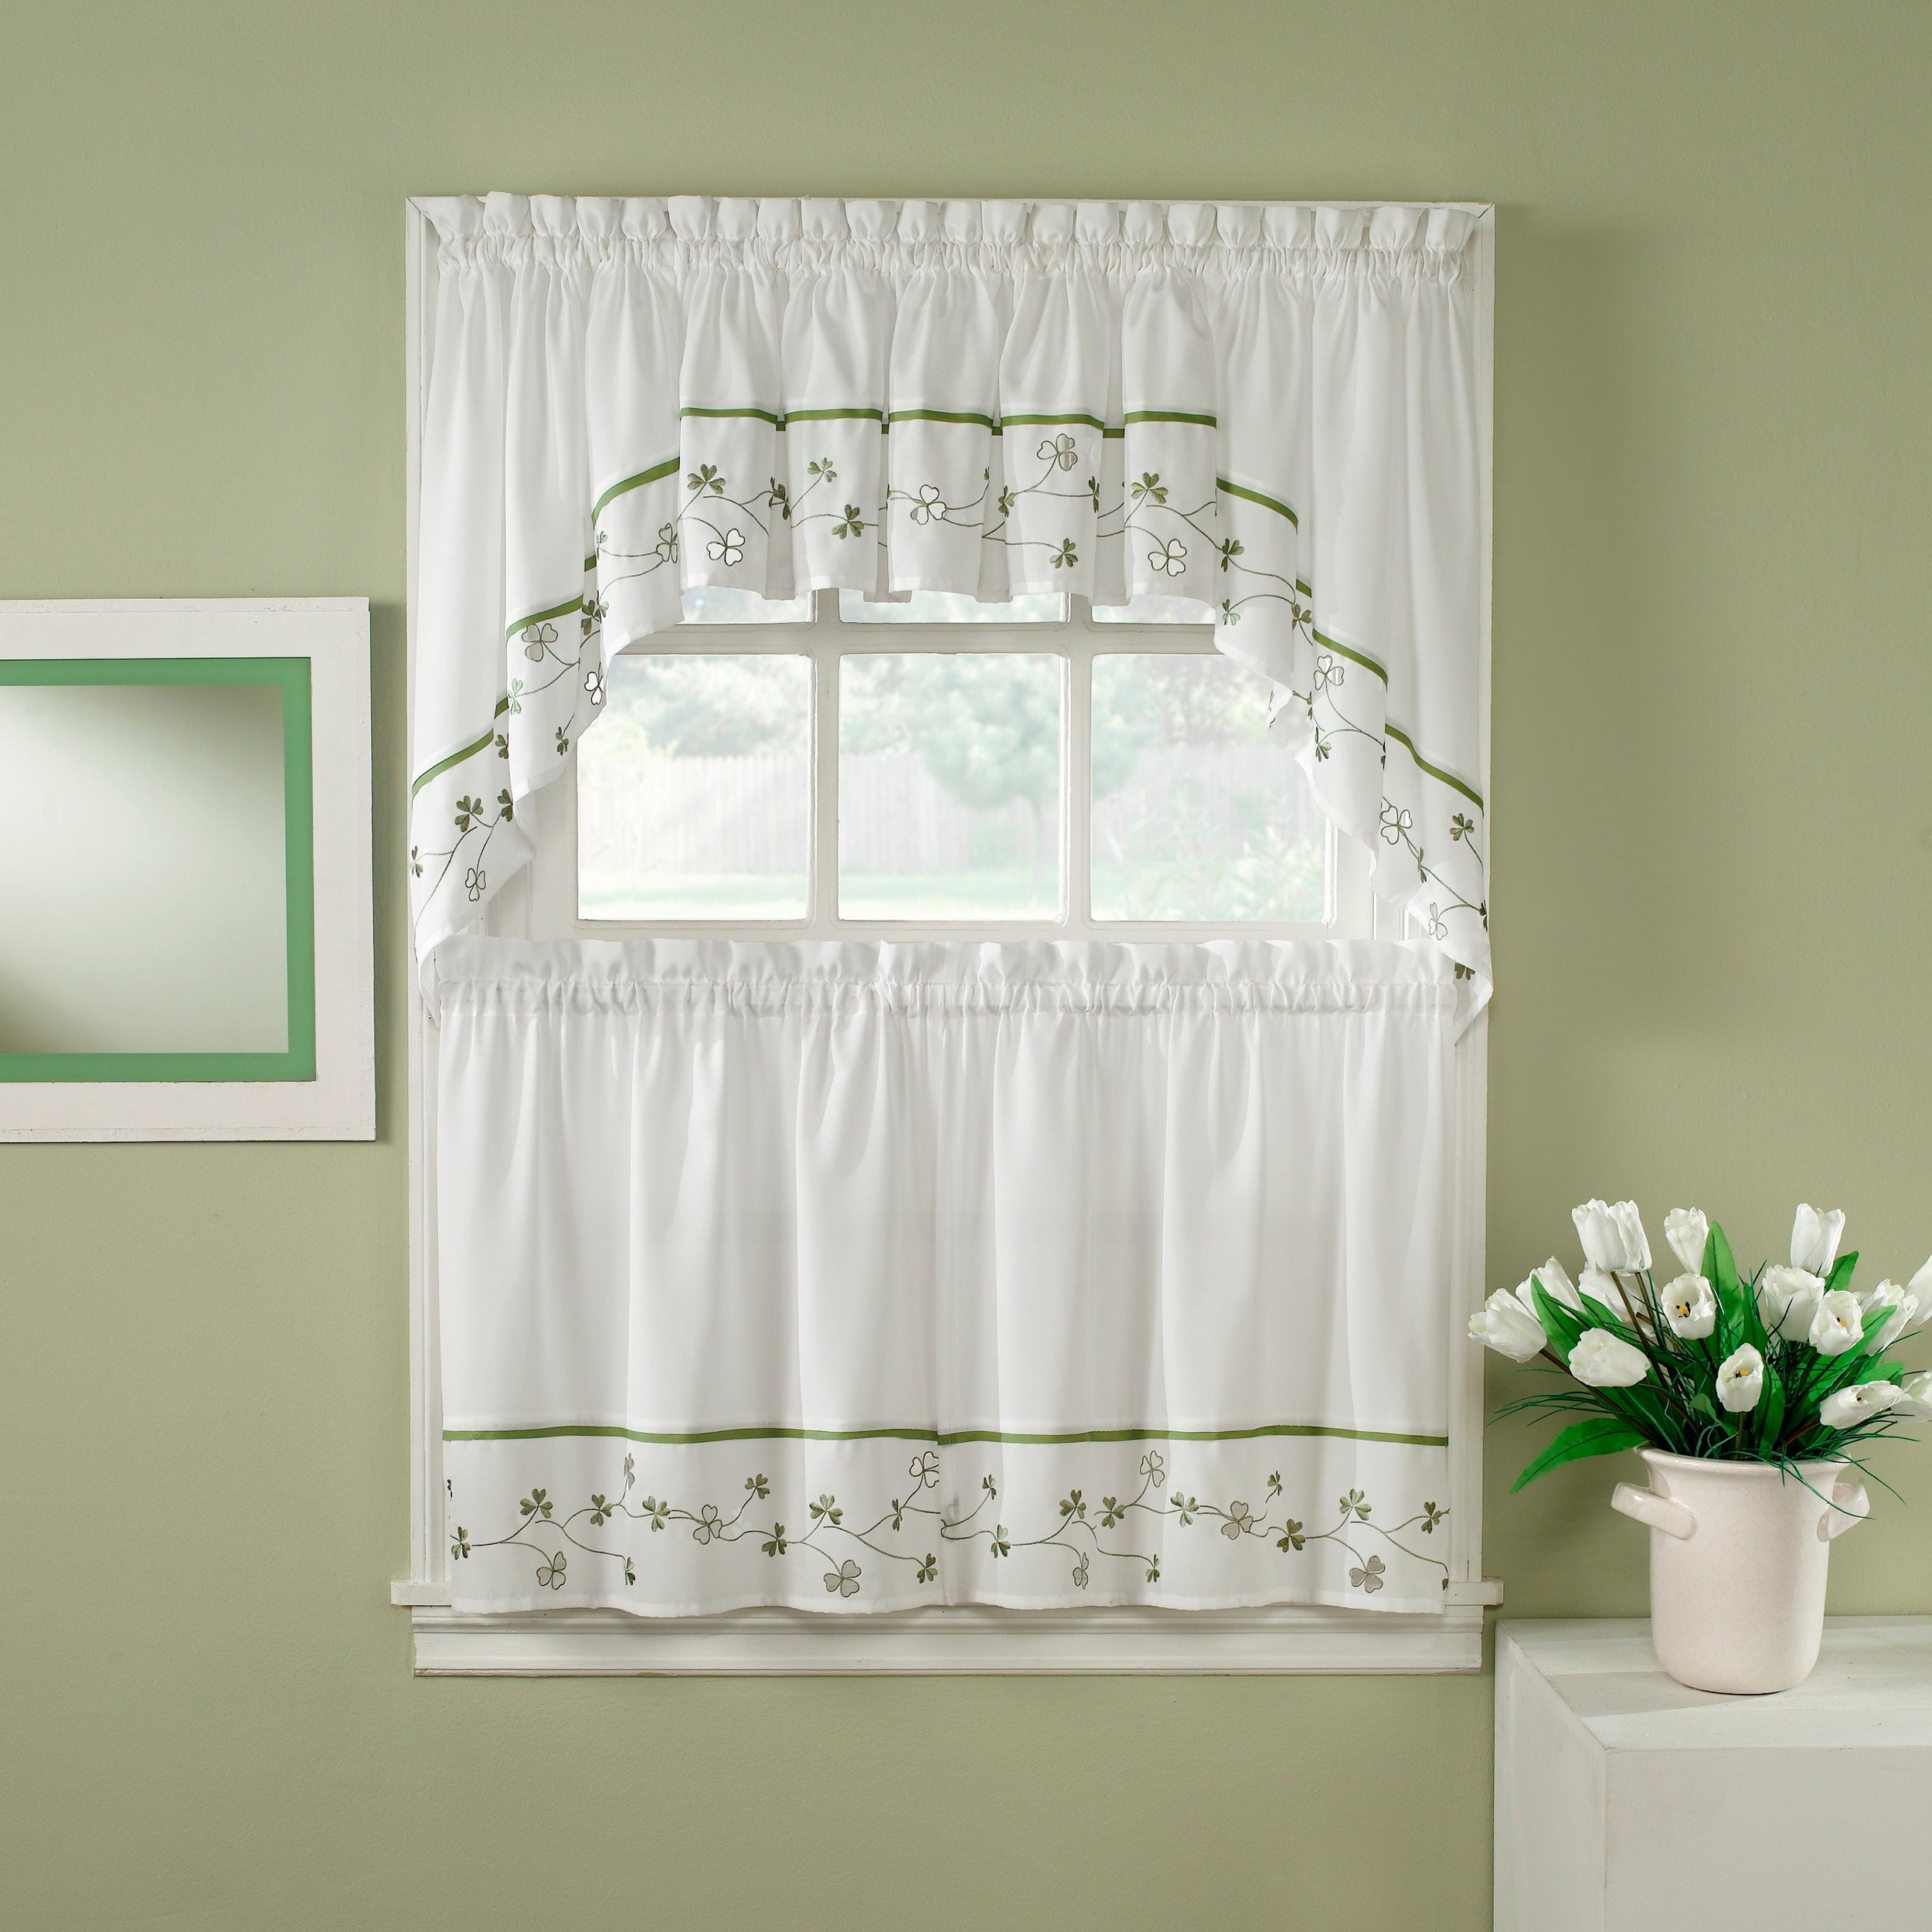 Clover Green/ White 5 Piece Curtain Tier And Swag Set Inside Most Current Cotton Blend Ivy Floral Tier Curtain And Swag Sets (View 20 of 20)